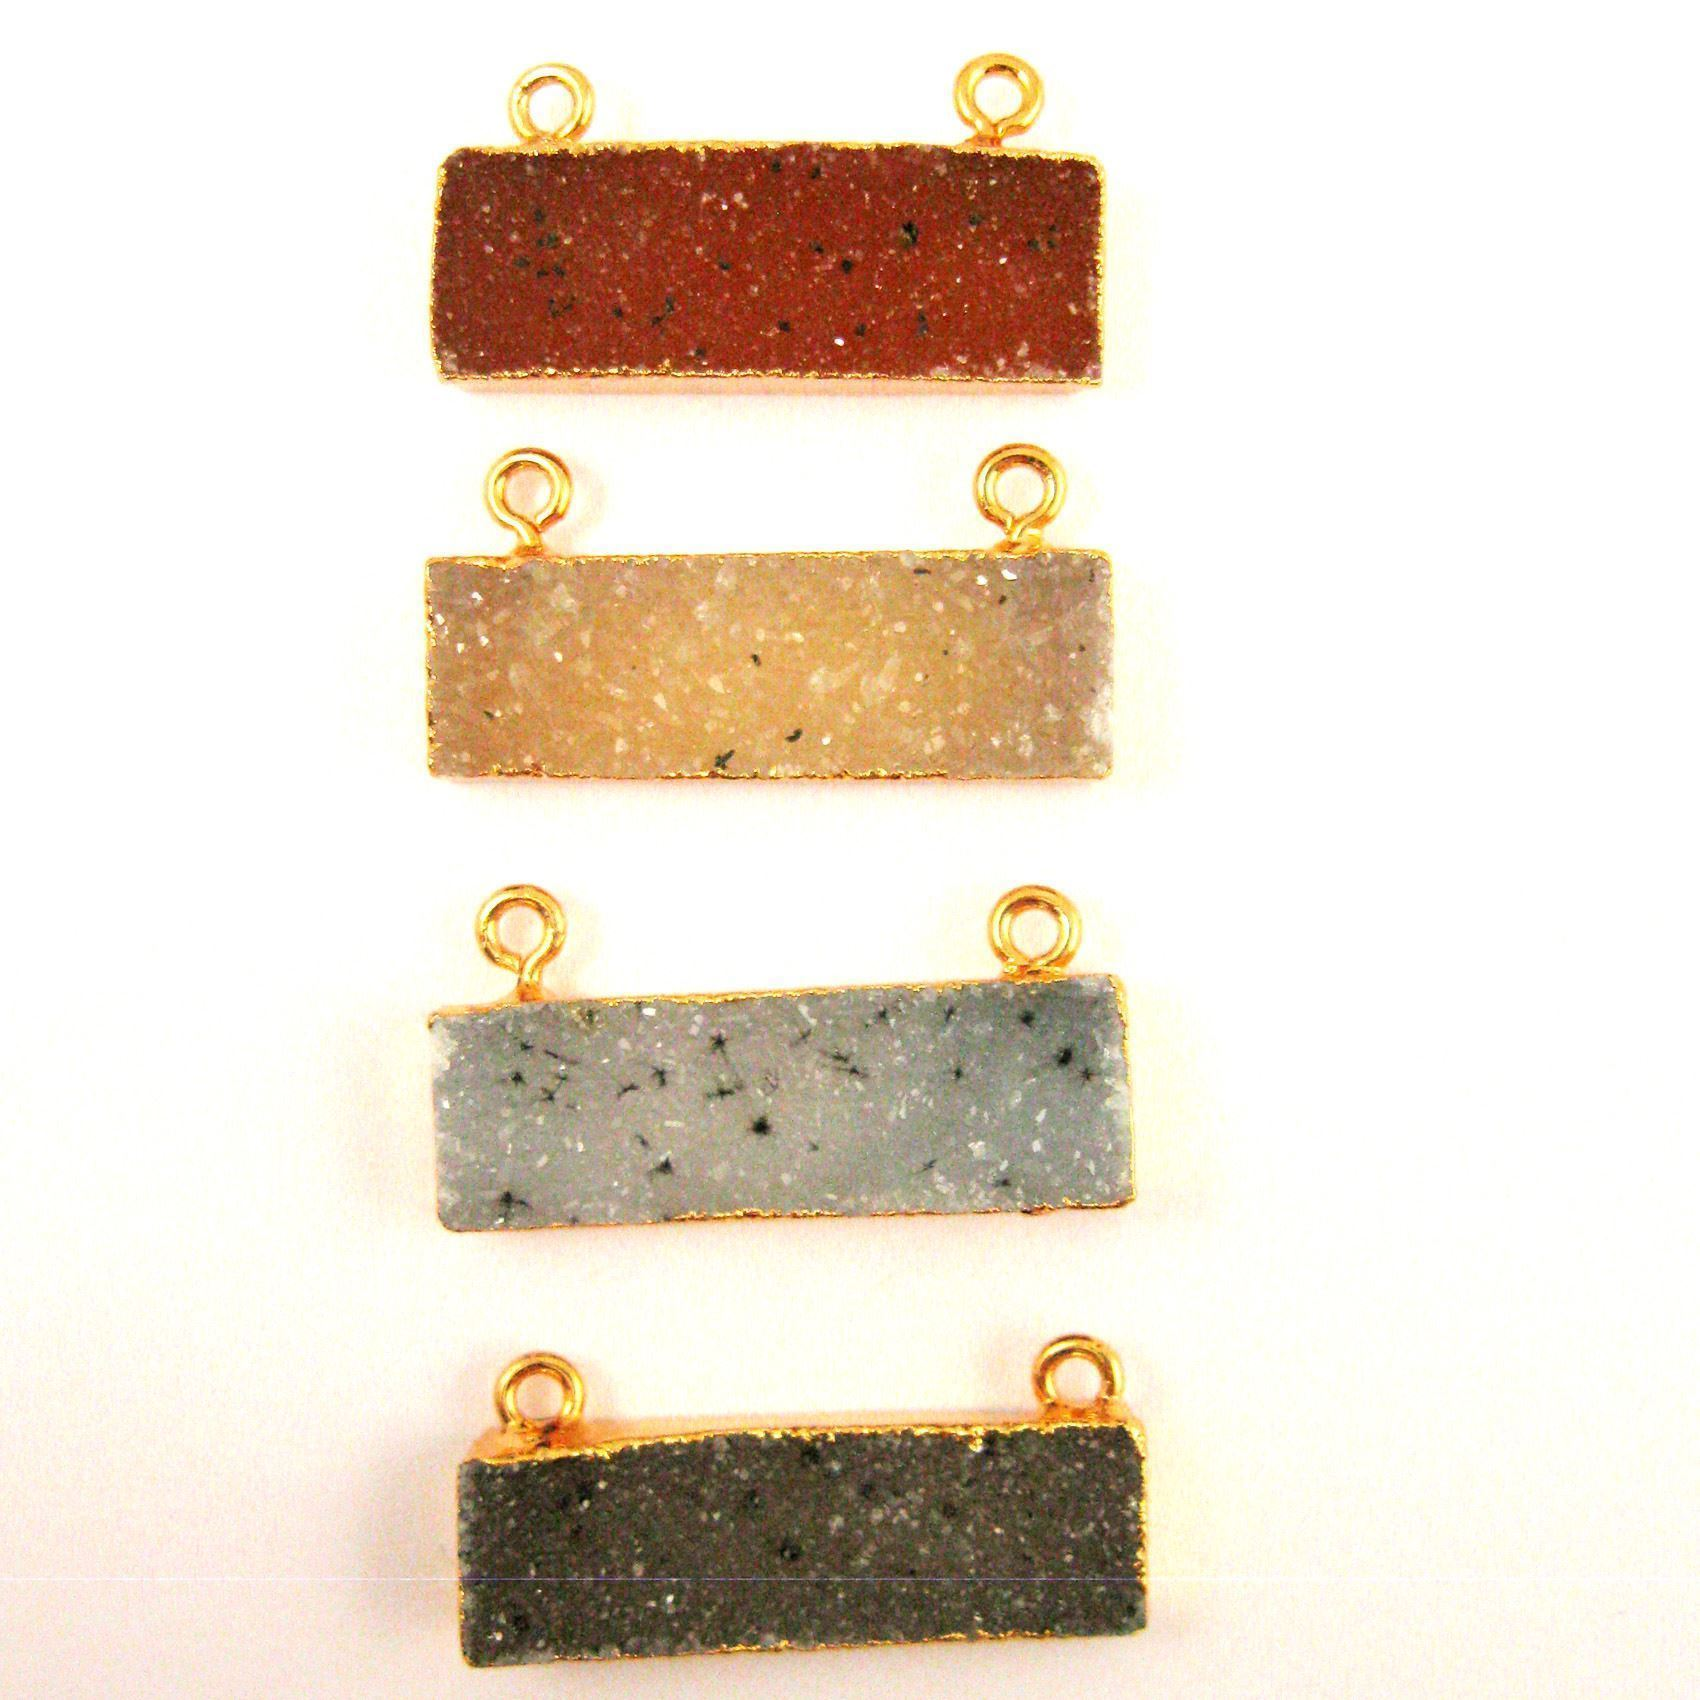 Natural Druzy Gemstone Bar Pendant, Speckled Druzy Agate Pendant Gold plated Edging Top Connector -Cream - 30mm